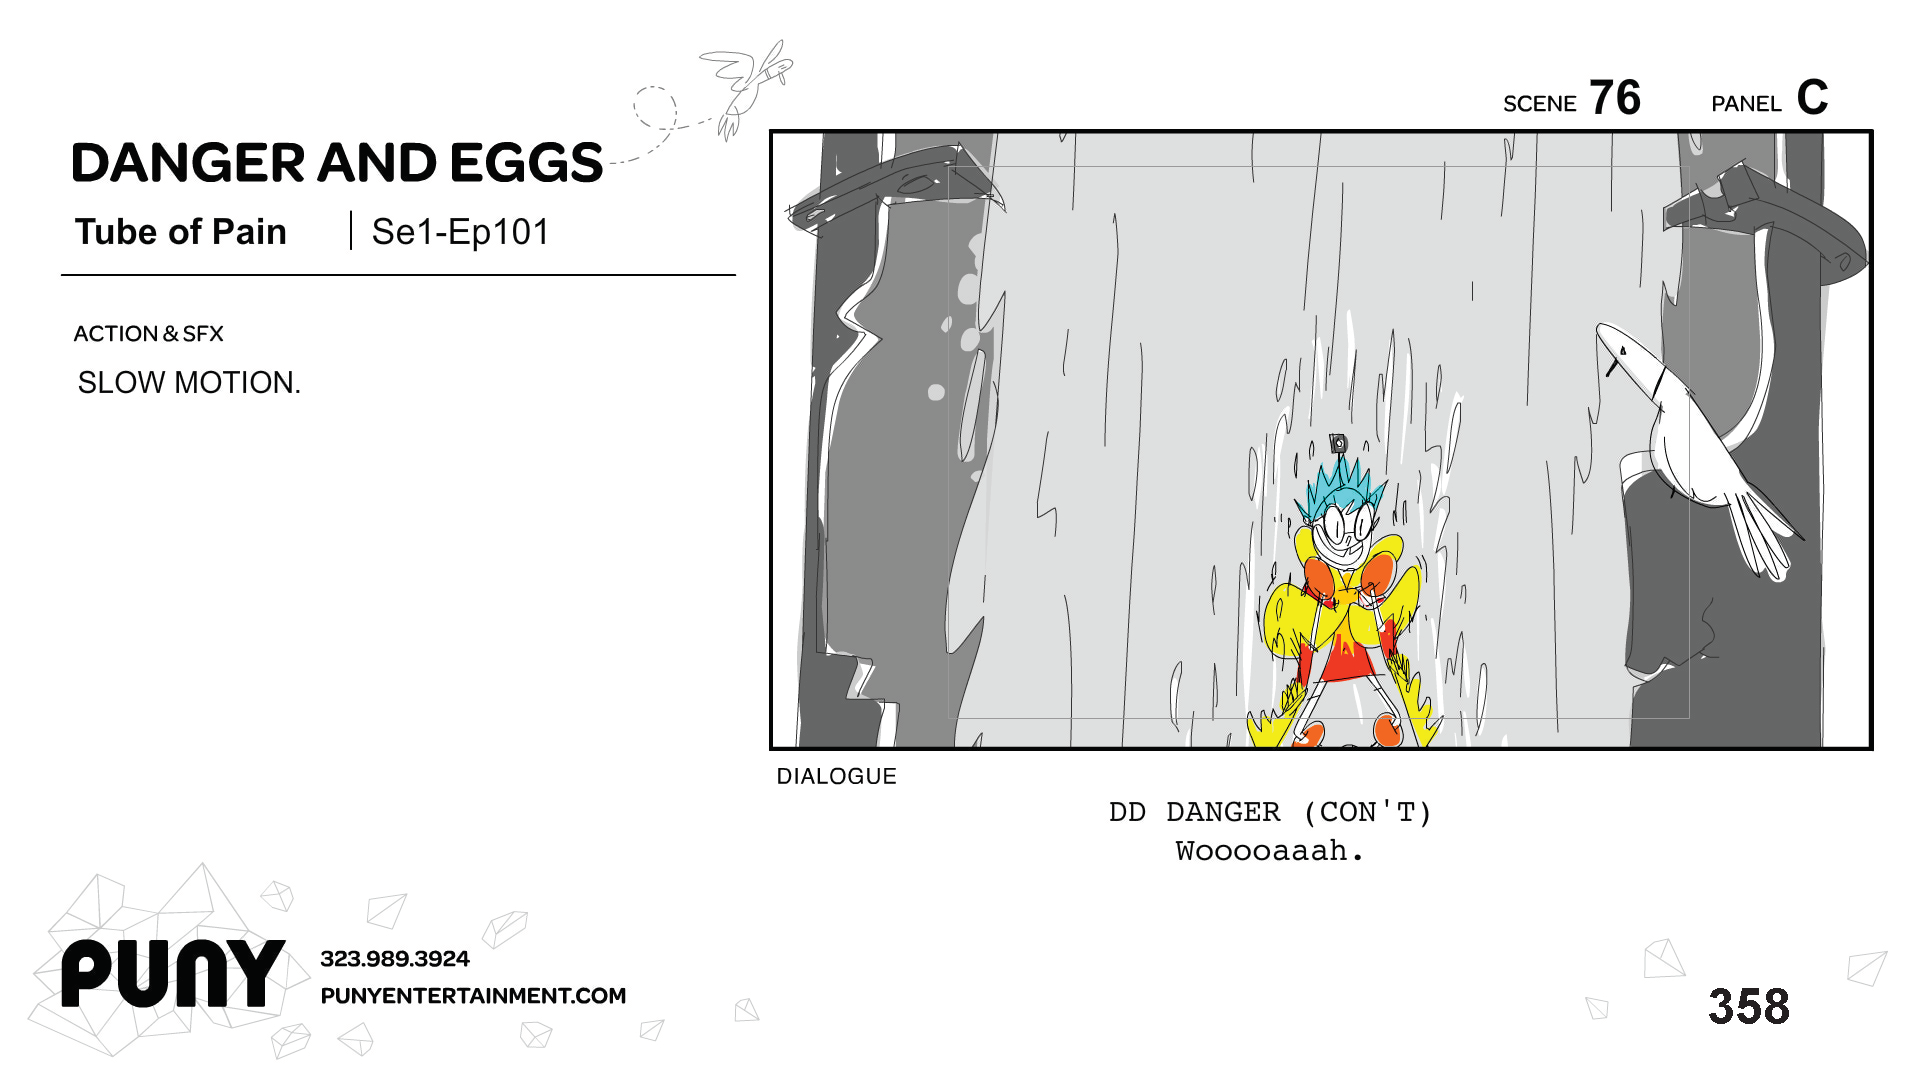 MikeOwens_STORYBOARDS_DangerAndEggs_Page_253.png